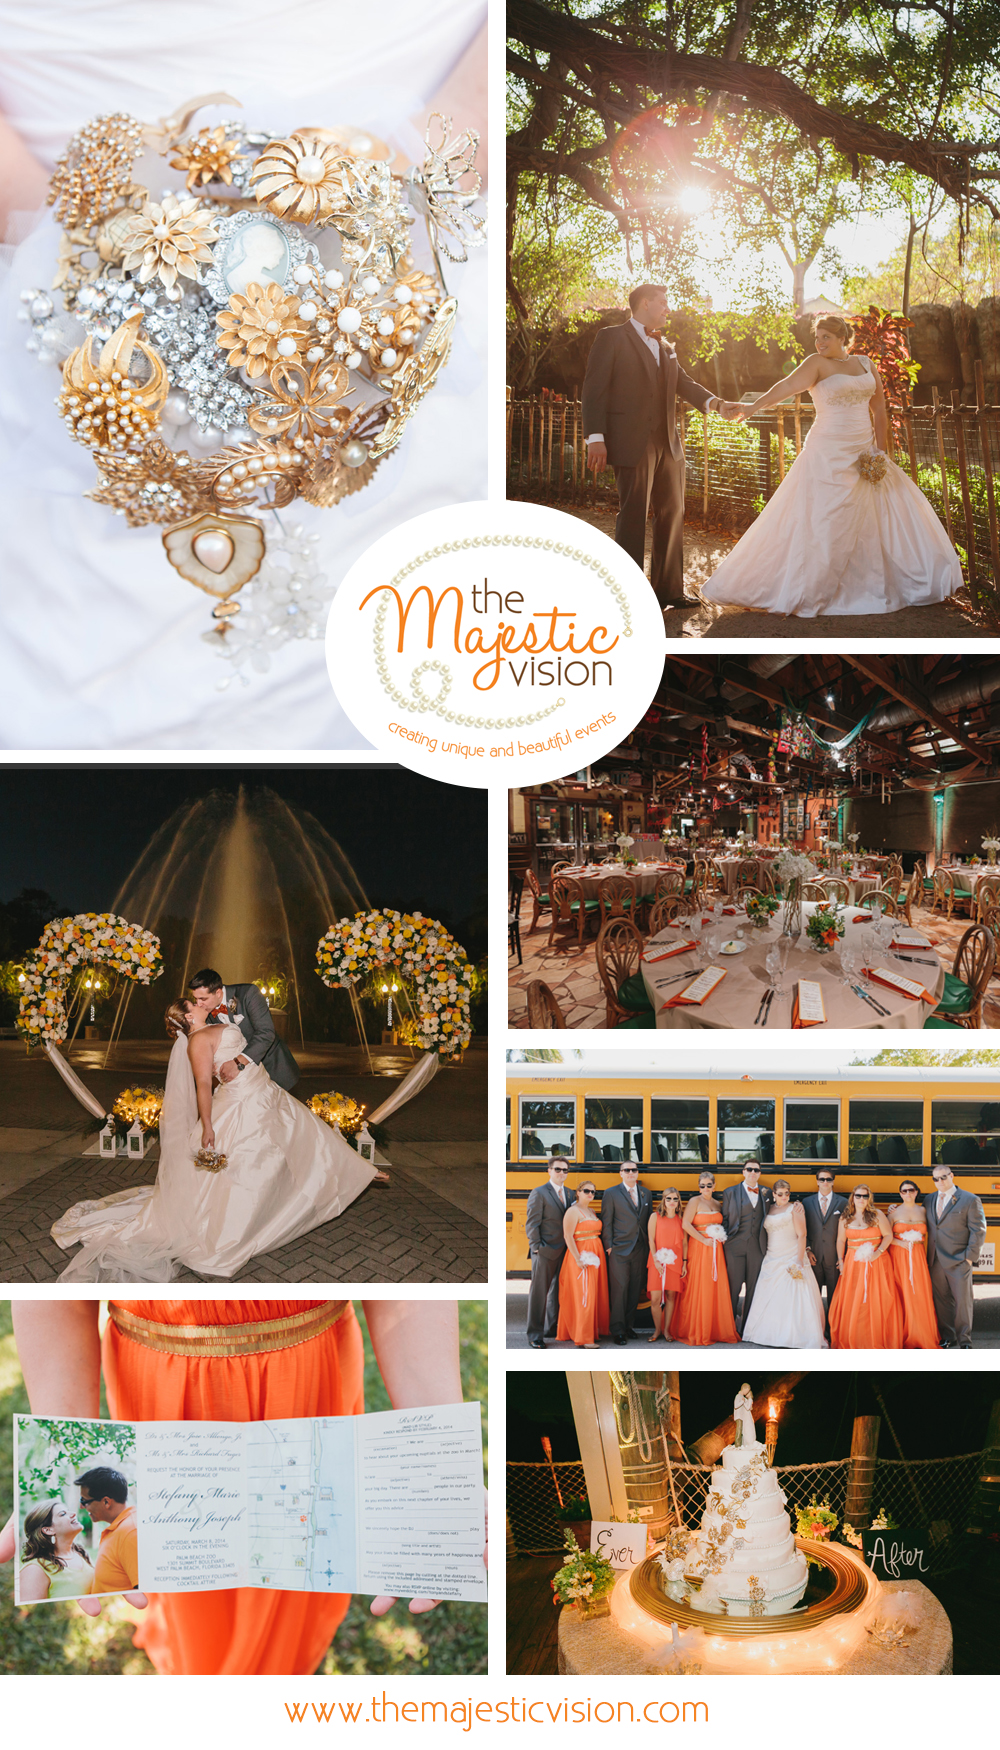 Elegant Zoo Wedding | The Majestic Vision Wedding Planning | Palm Beach Zoo in Palm Beach, FL | www.themajesticvision.com | Robert Madrid Photography